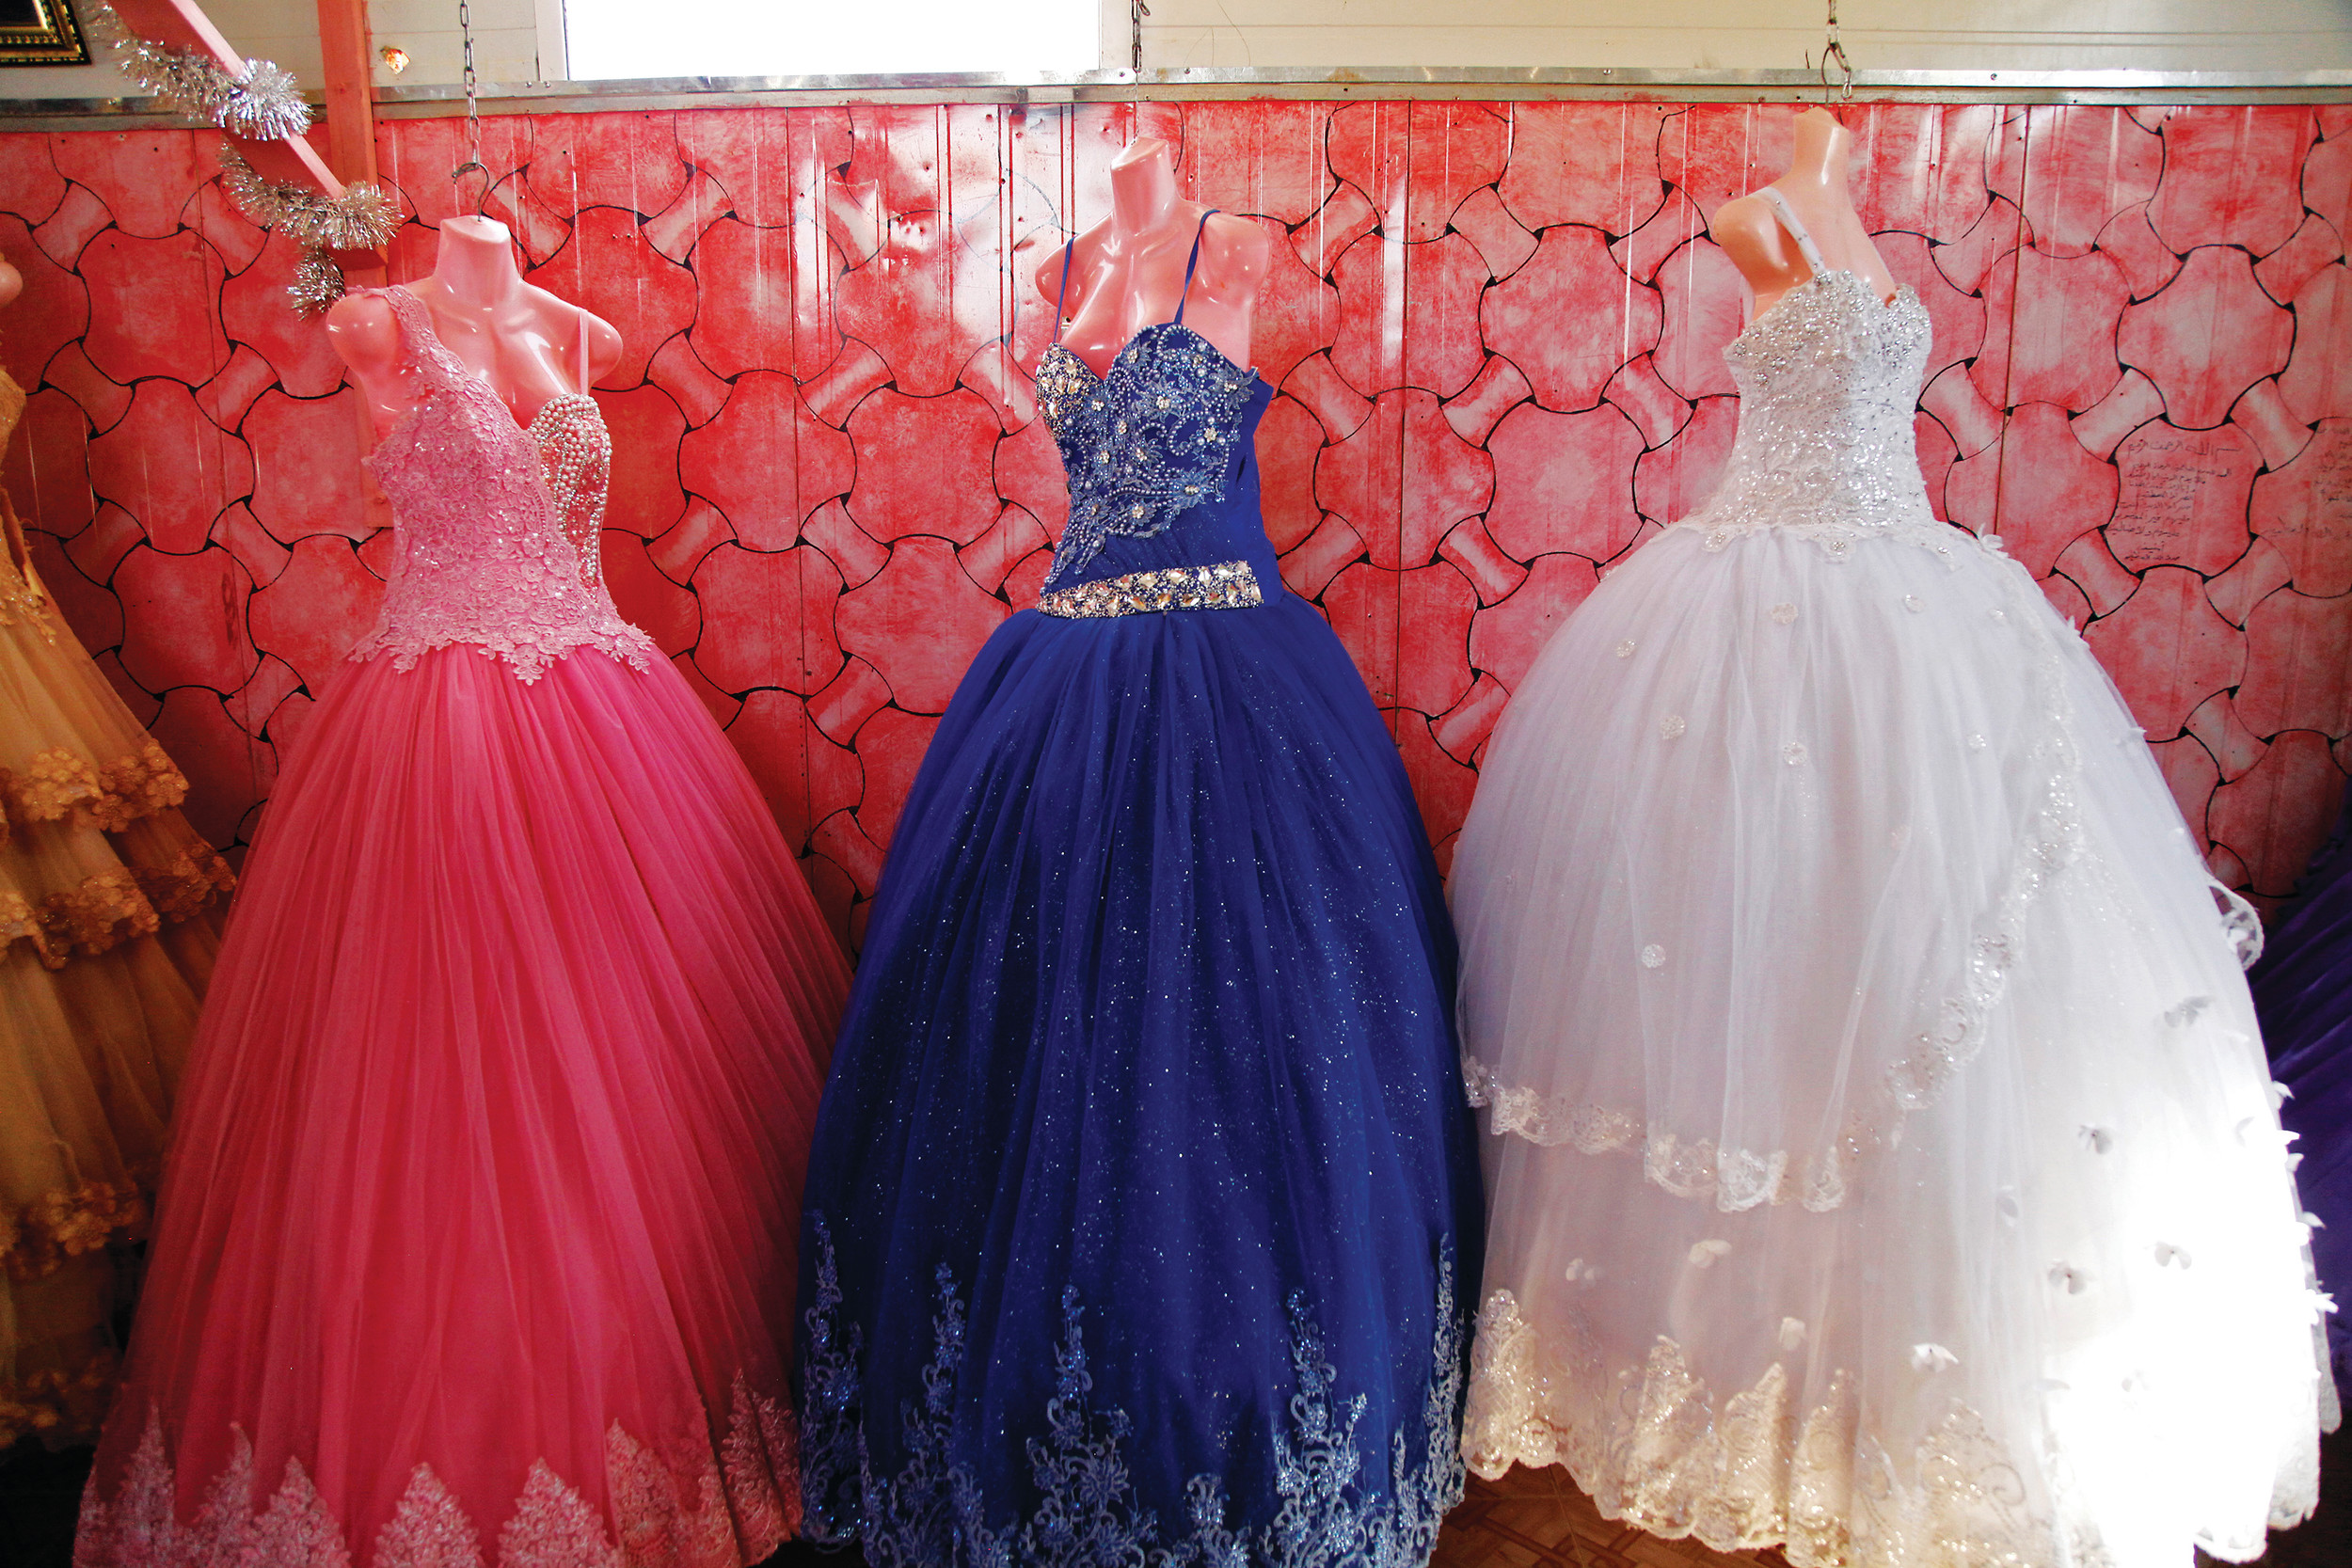 More Syrian child brides are in Jordan amid poverty, uncertainty ...